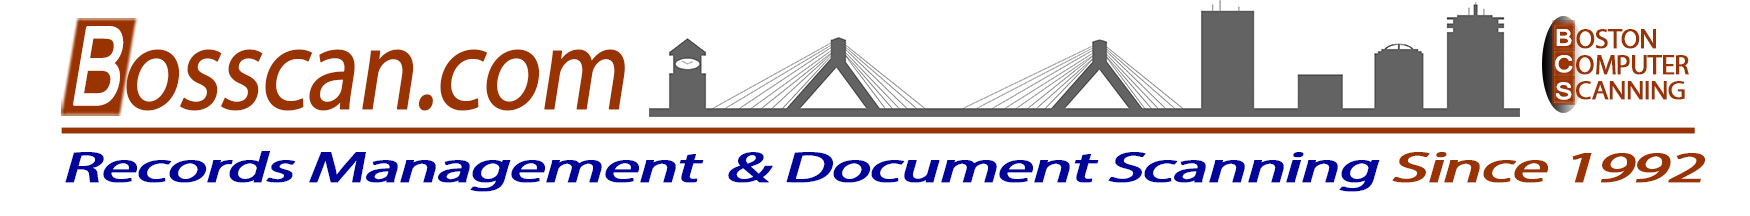 Paper to PDF Boston Since 1992